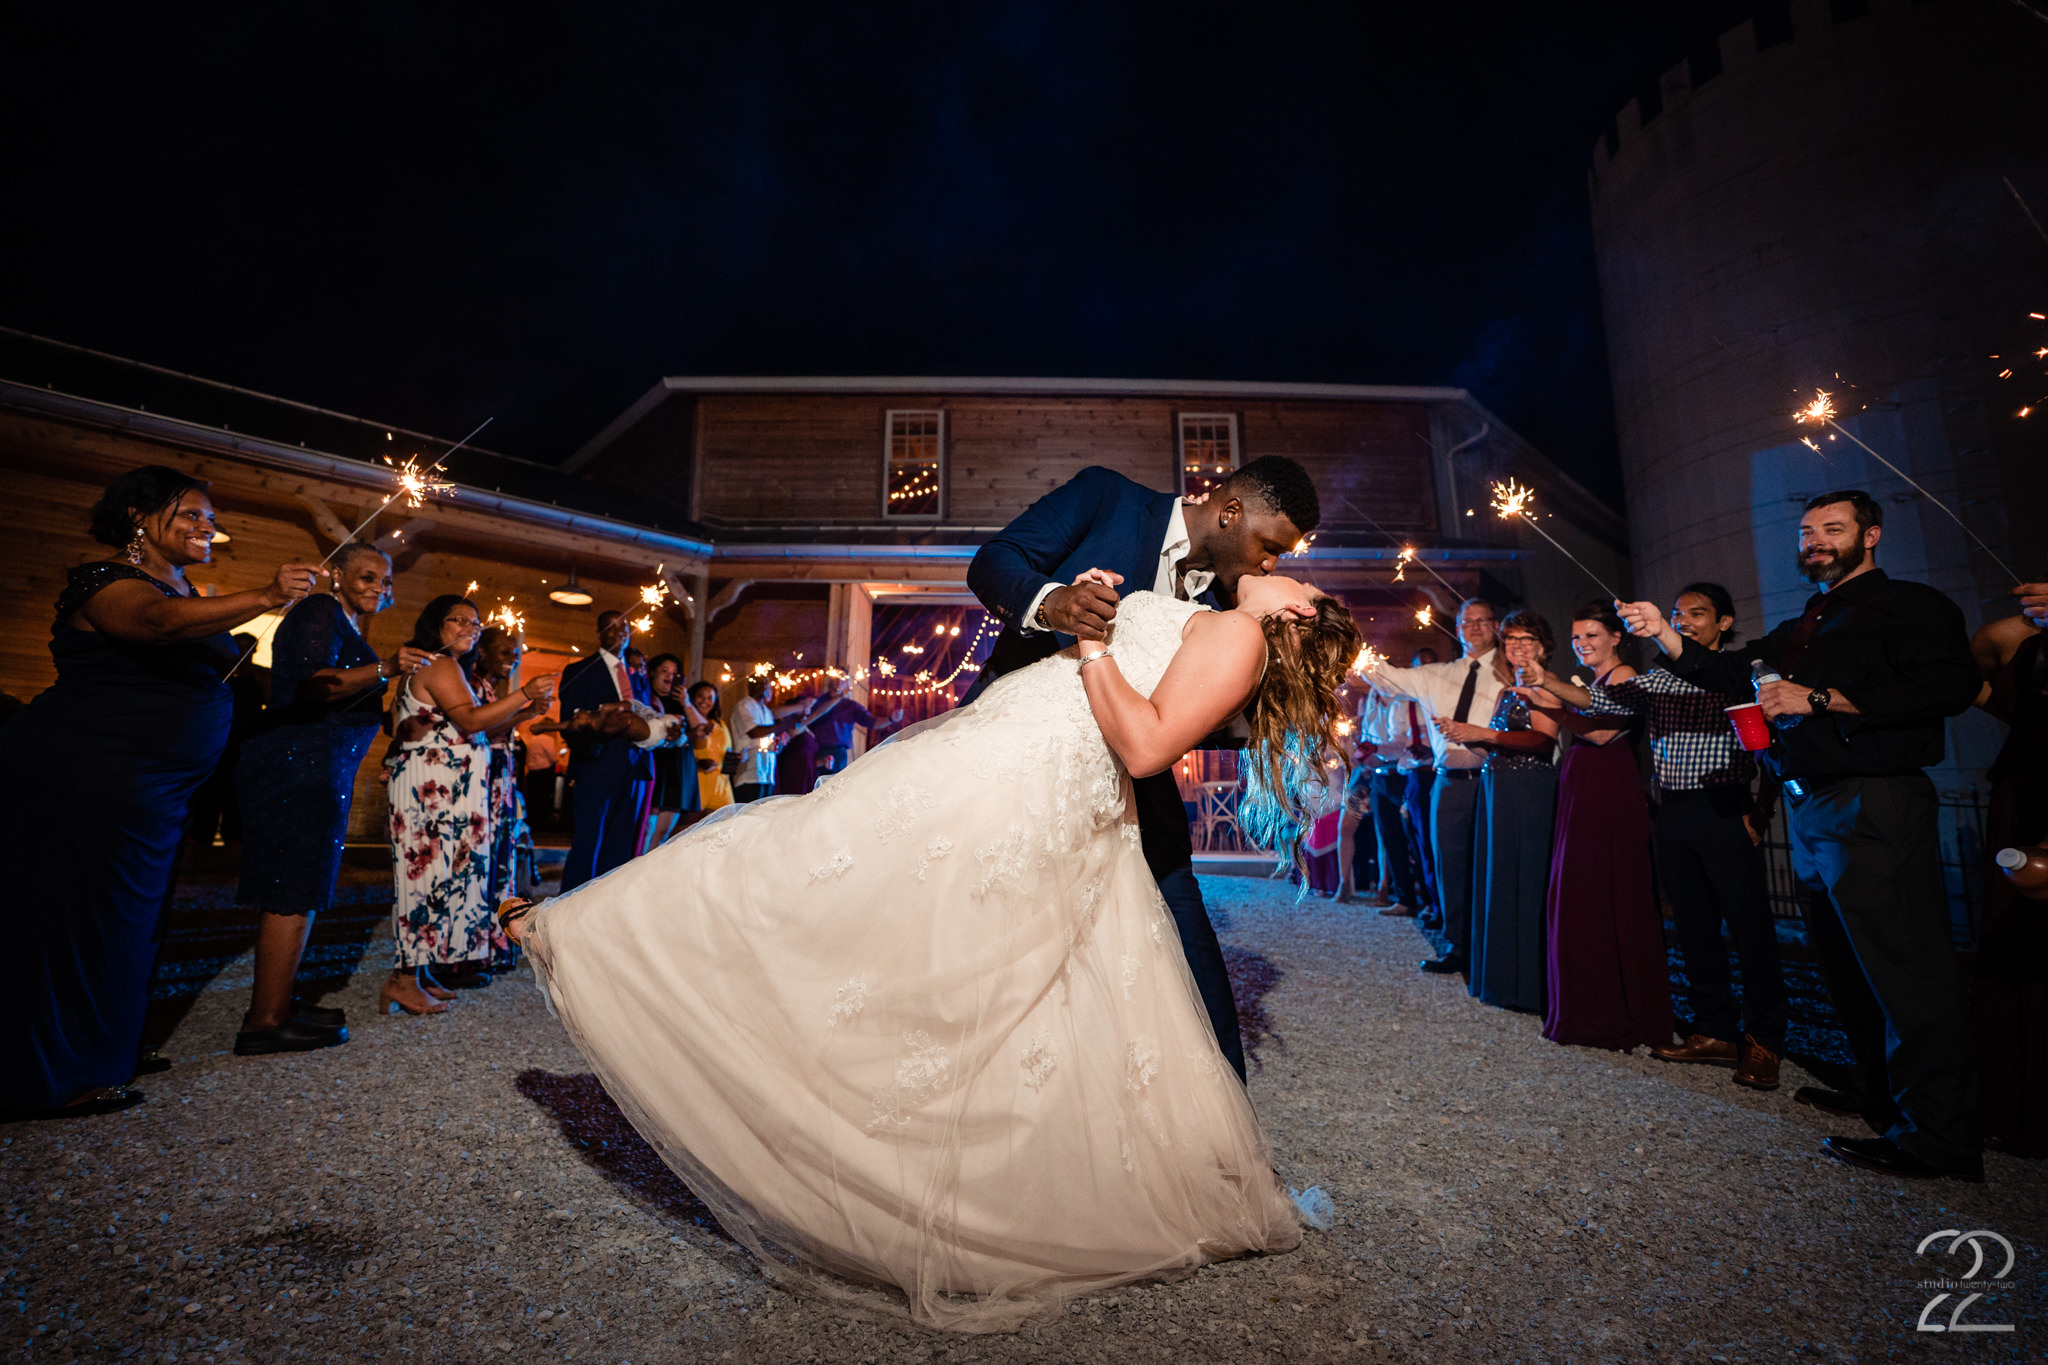 Round Barn Wedding at Orrmont Estate - Dayton Wedding Photographers